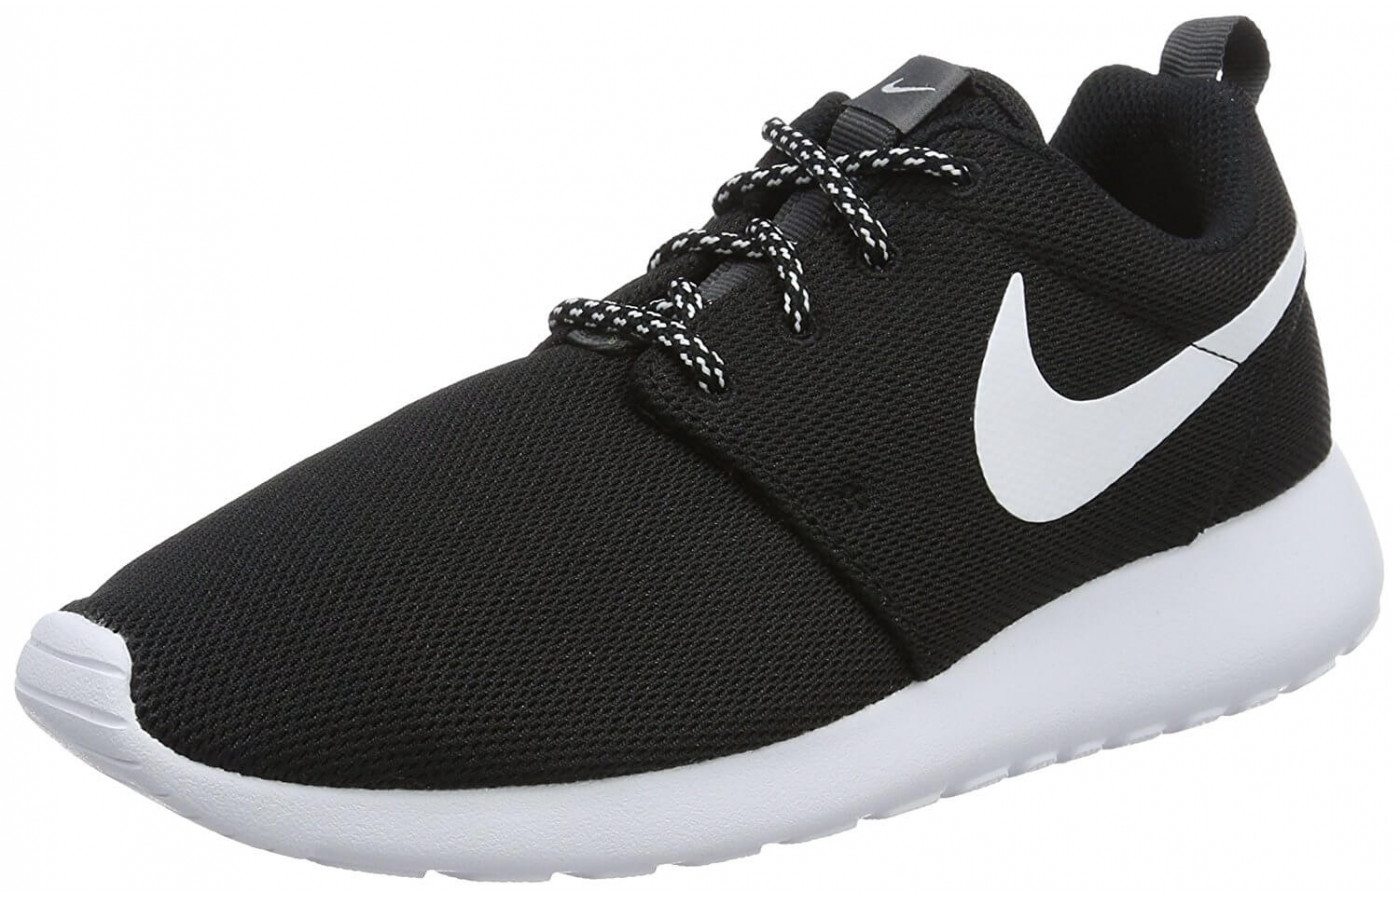 new arrival 0dd20 9ad37 Nike Roshe One